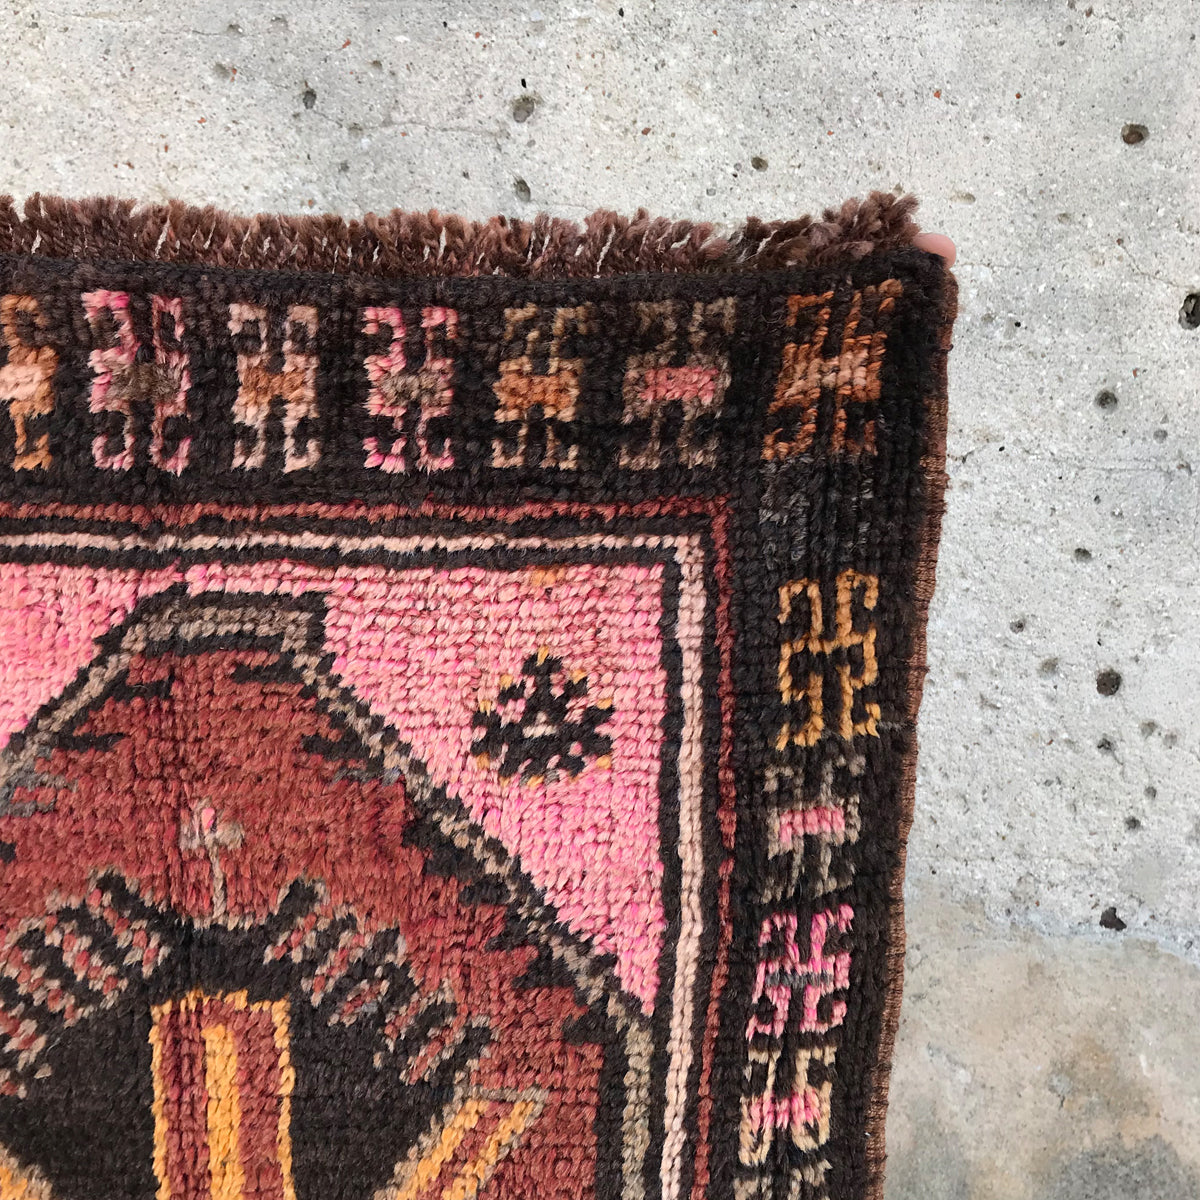 This small vintage Turkish rug has a soft pile and amazing pinks! Cozy up a bathroom with this beauty! 22x38 inches.